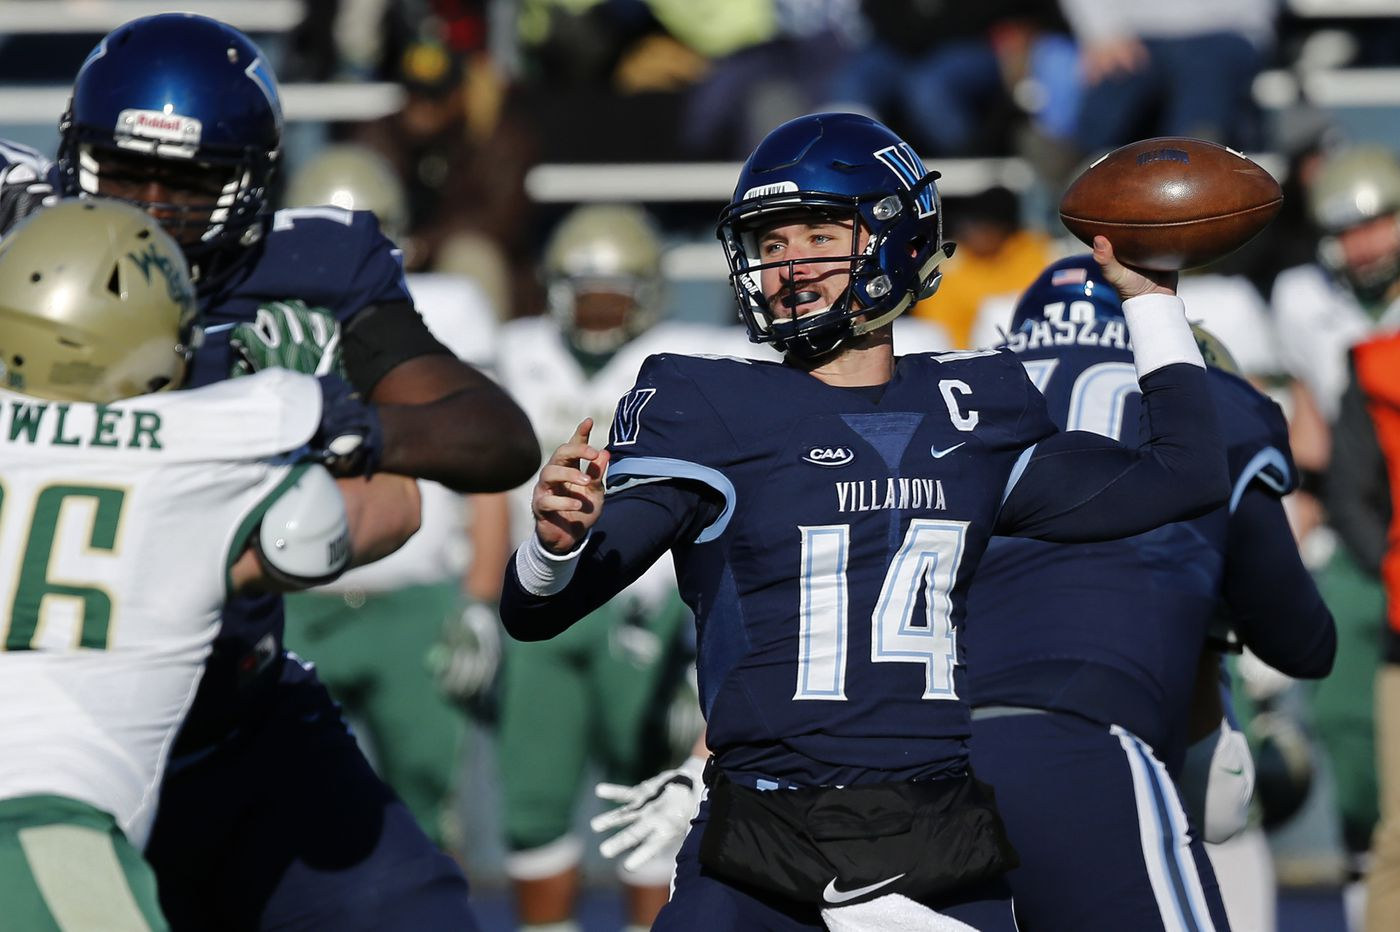 Turnovers too much to overcome as Villanova falls to William & Mary, 24-17